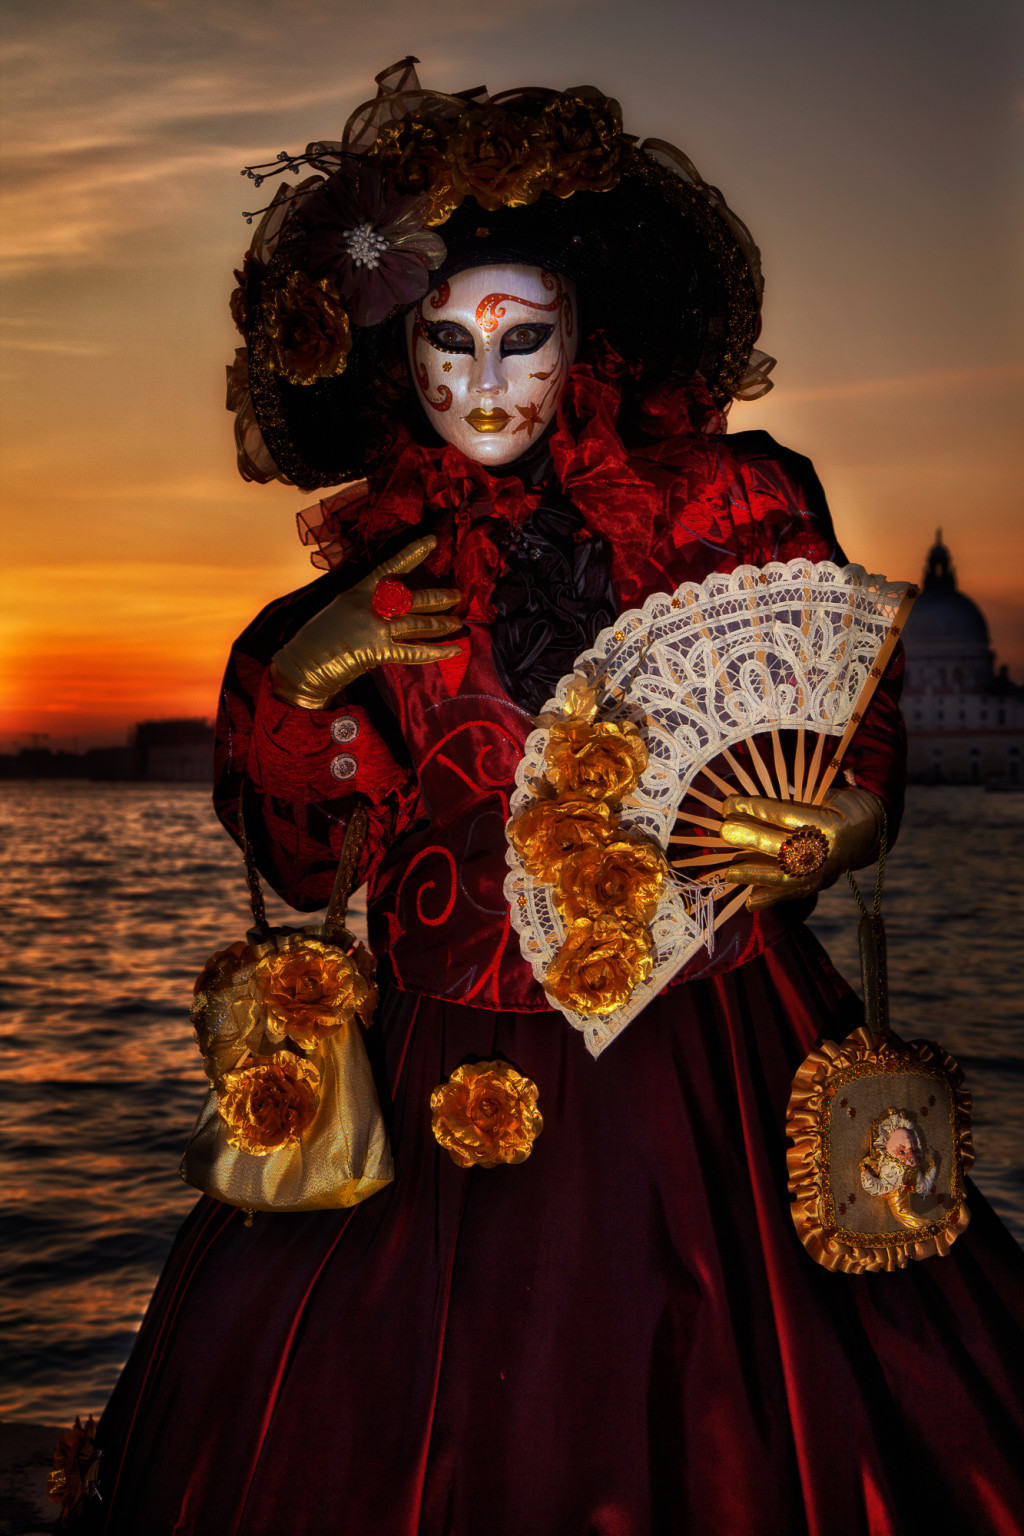 Mysterious looking Carnival model in front of a bright orange sunset